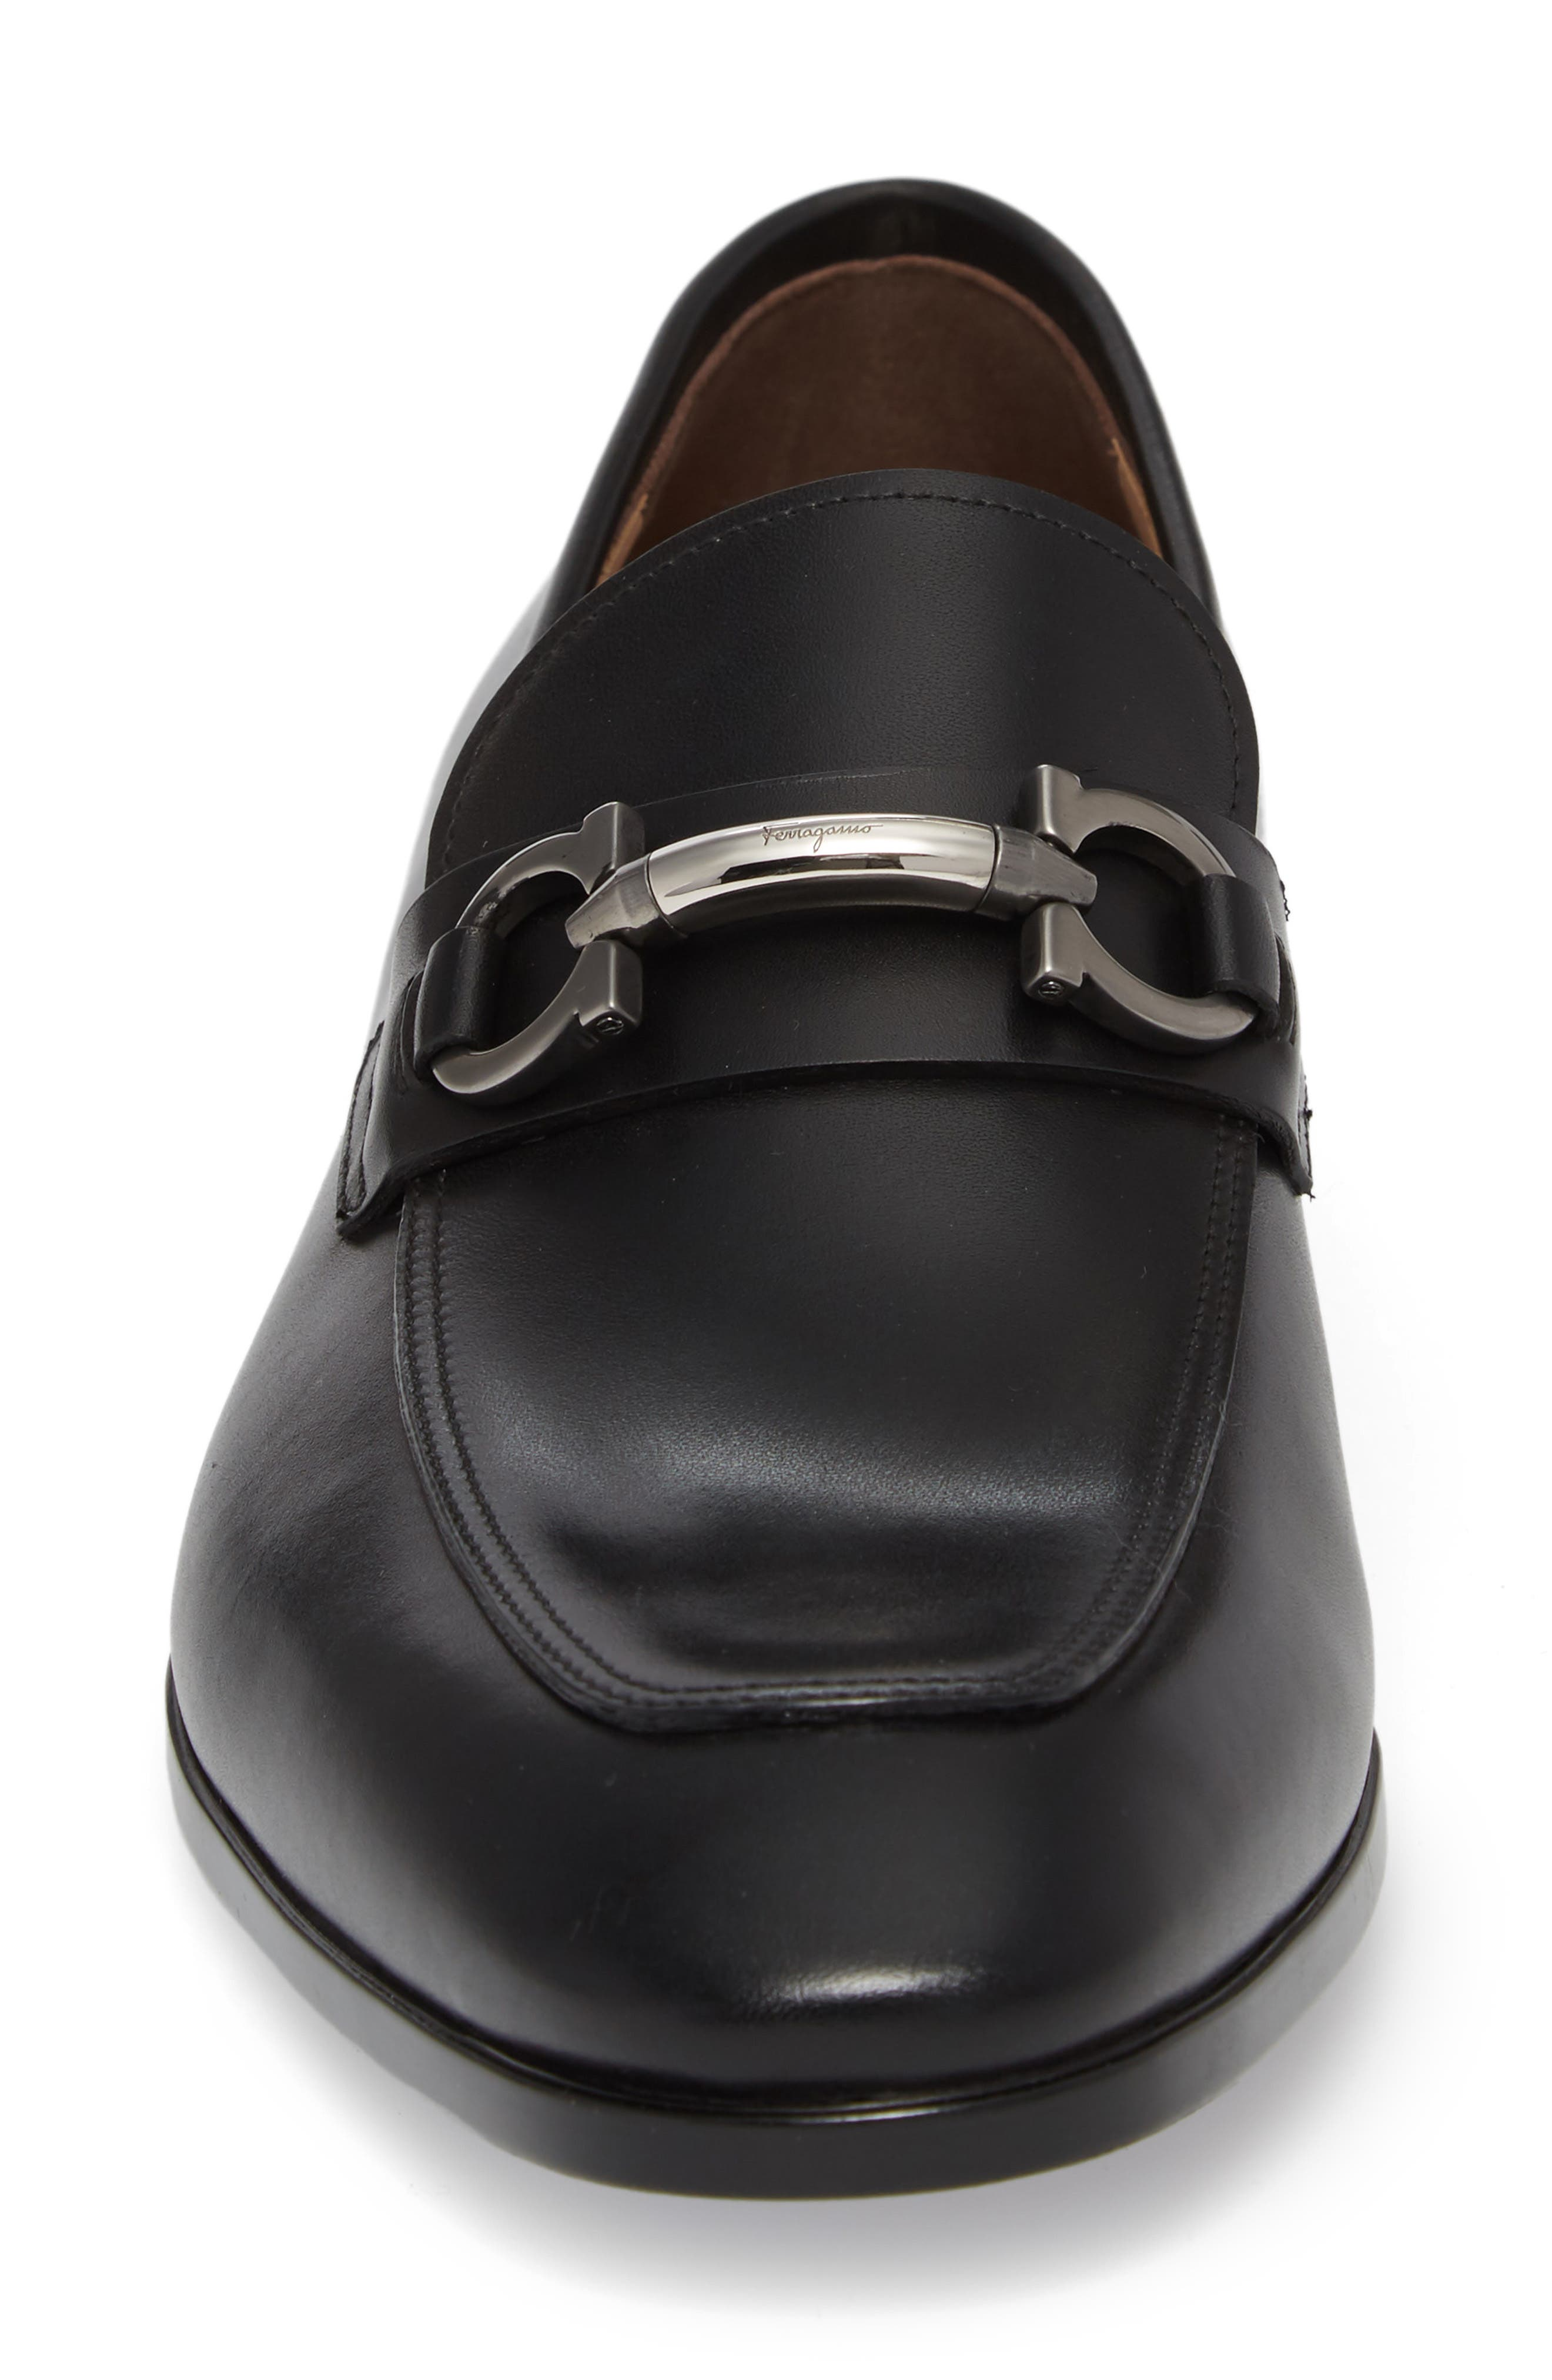 SALVATORE FERRAGAMO, Benford Rounded Bit Loafer, Alternate thumbnail 4, color, NERO LEATHER